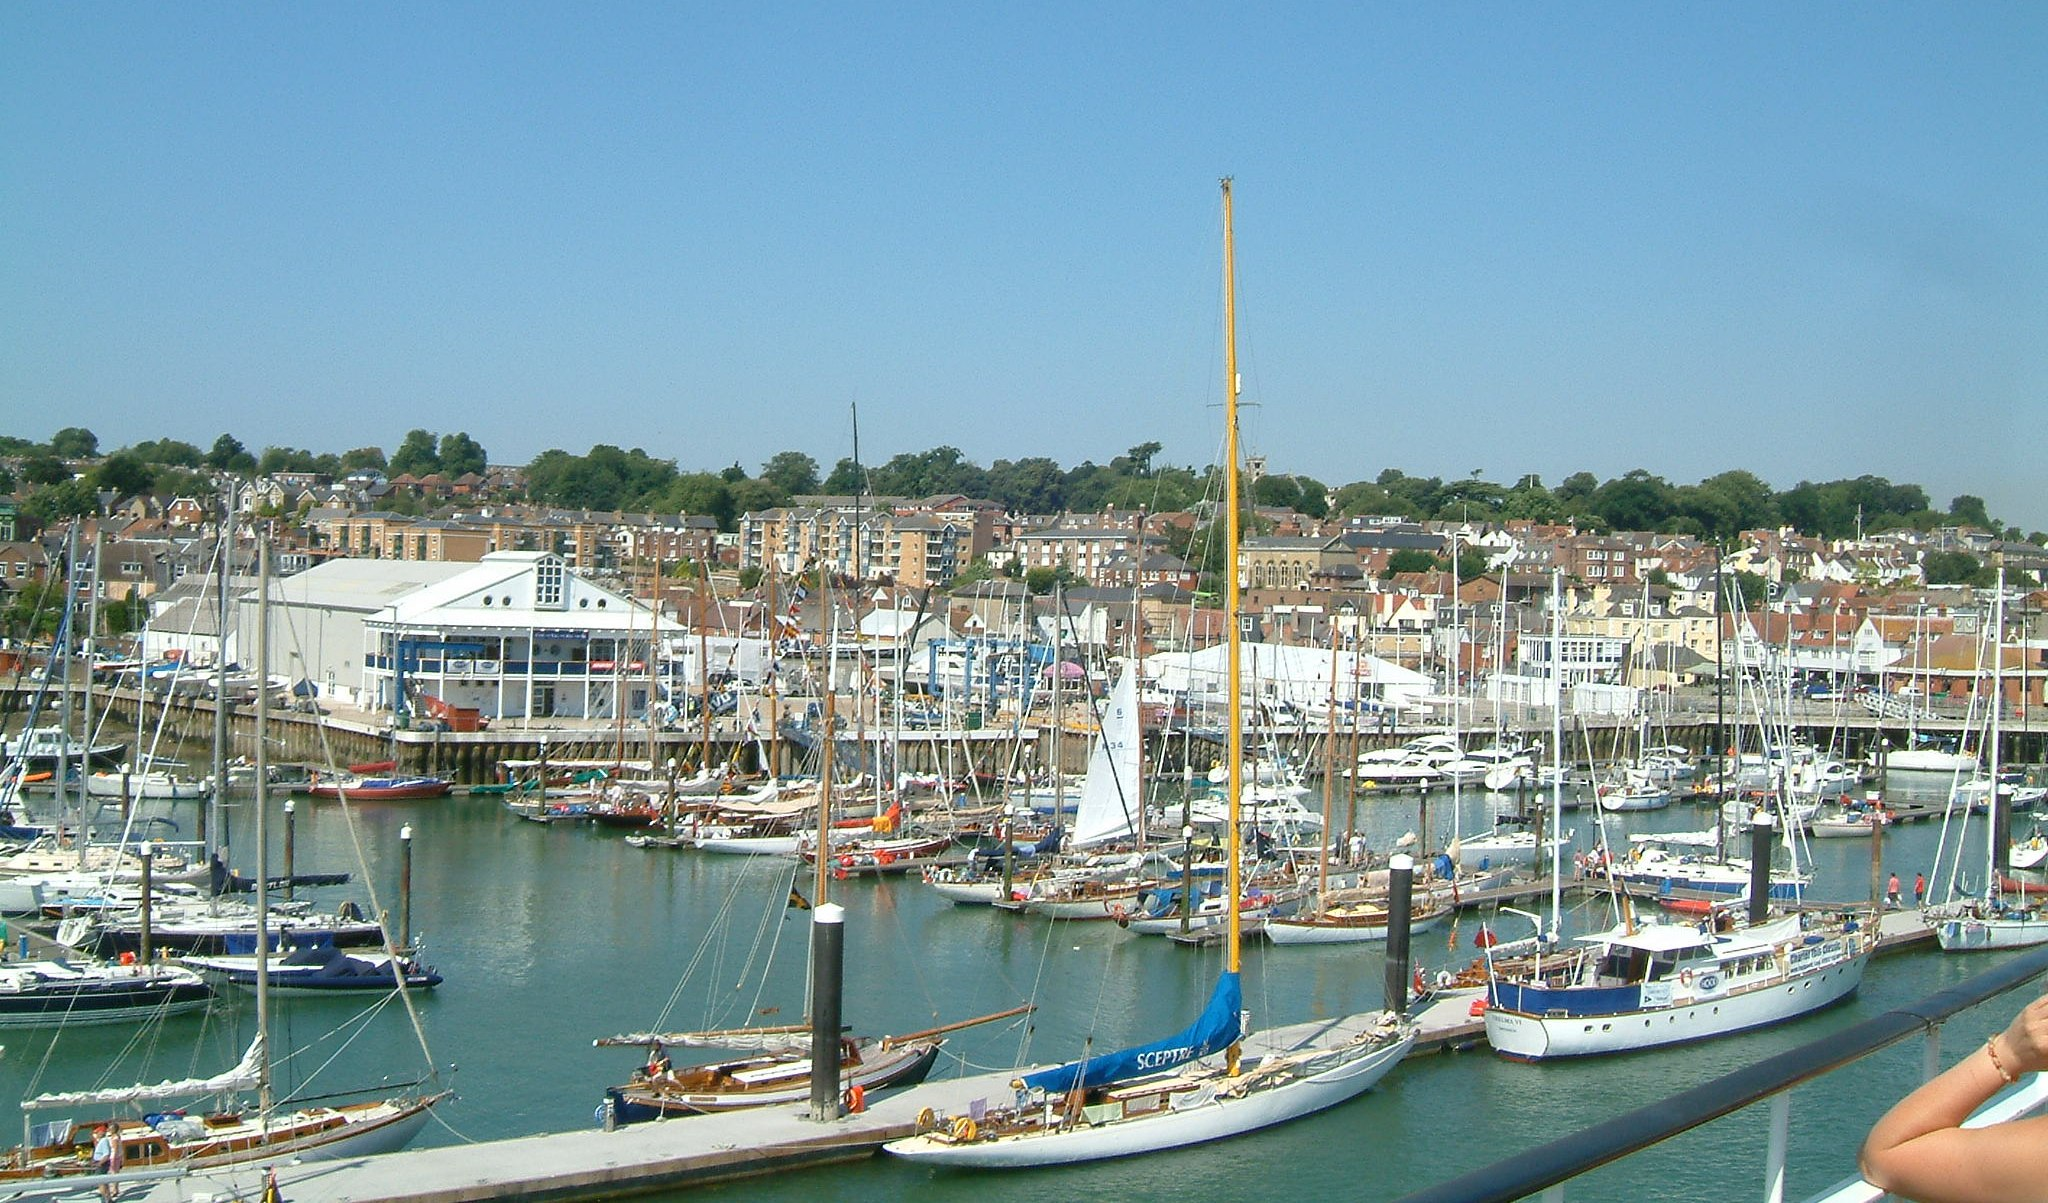 File:Cowes 02.jpg - Wikimedia Commons